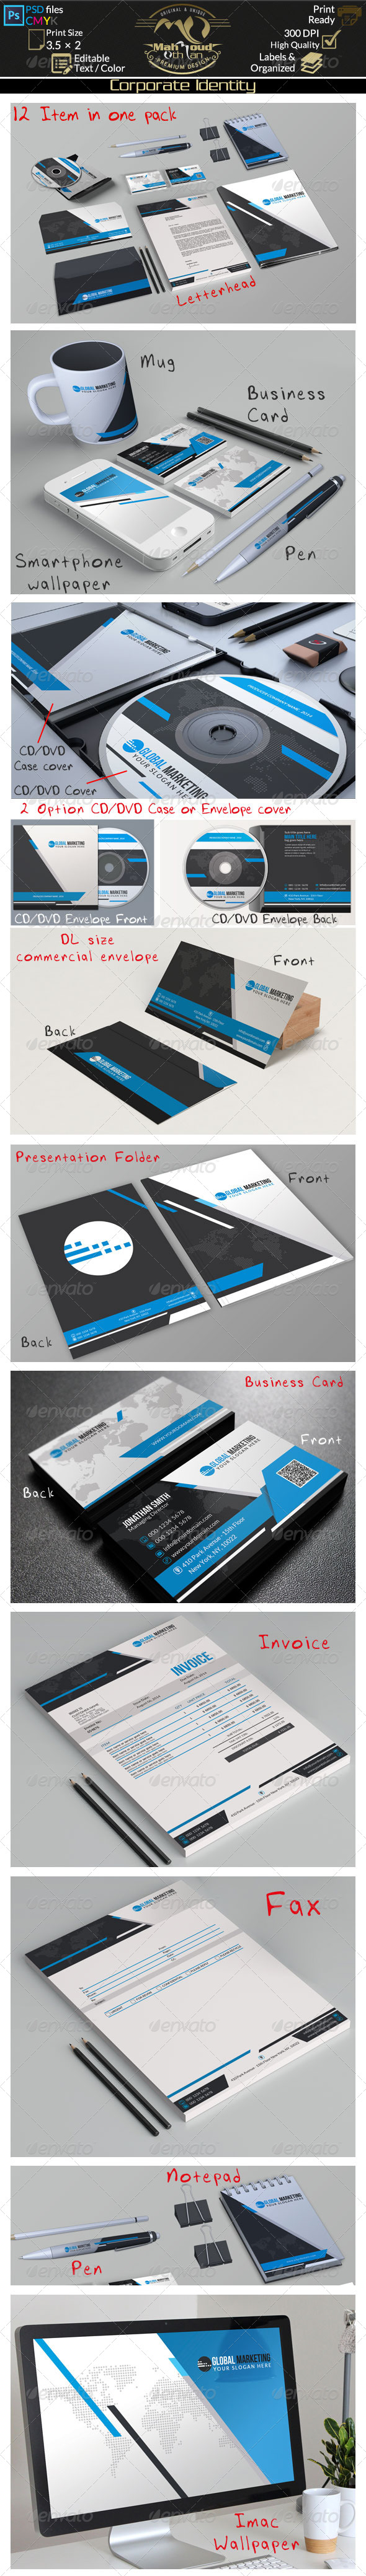 GraphicRiver Black And Blue Corporate Identity 03 8589636